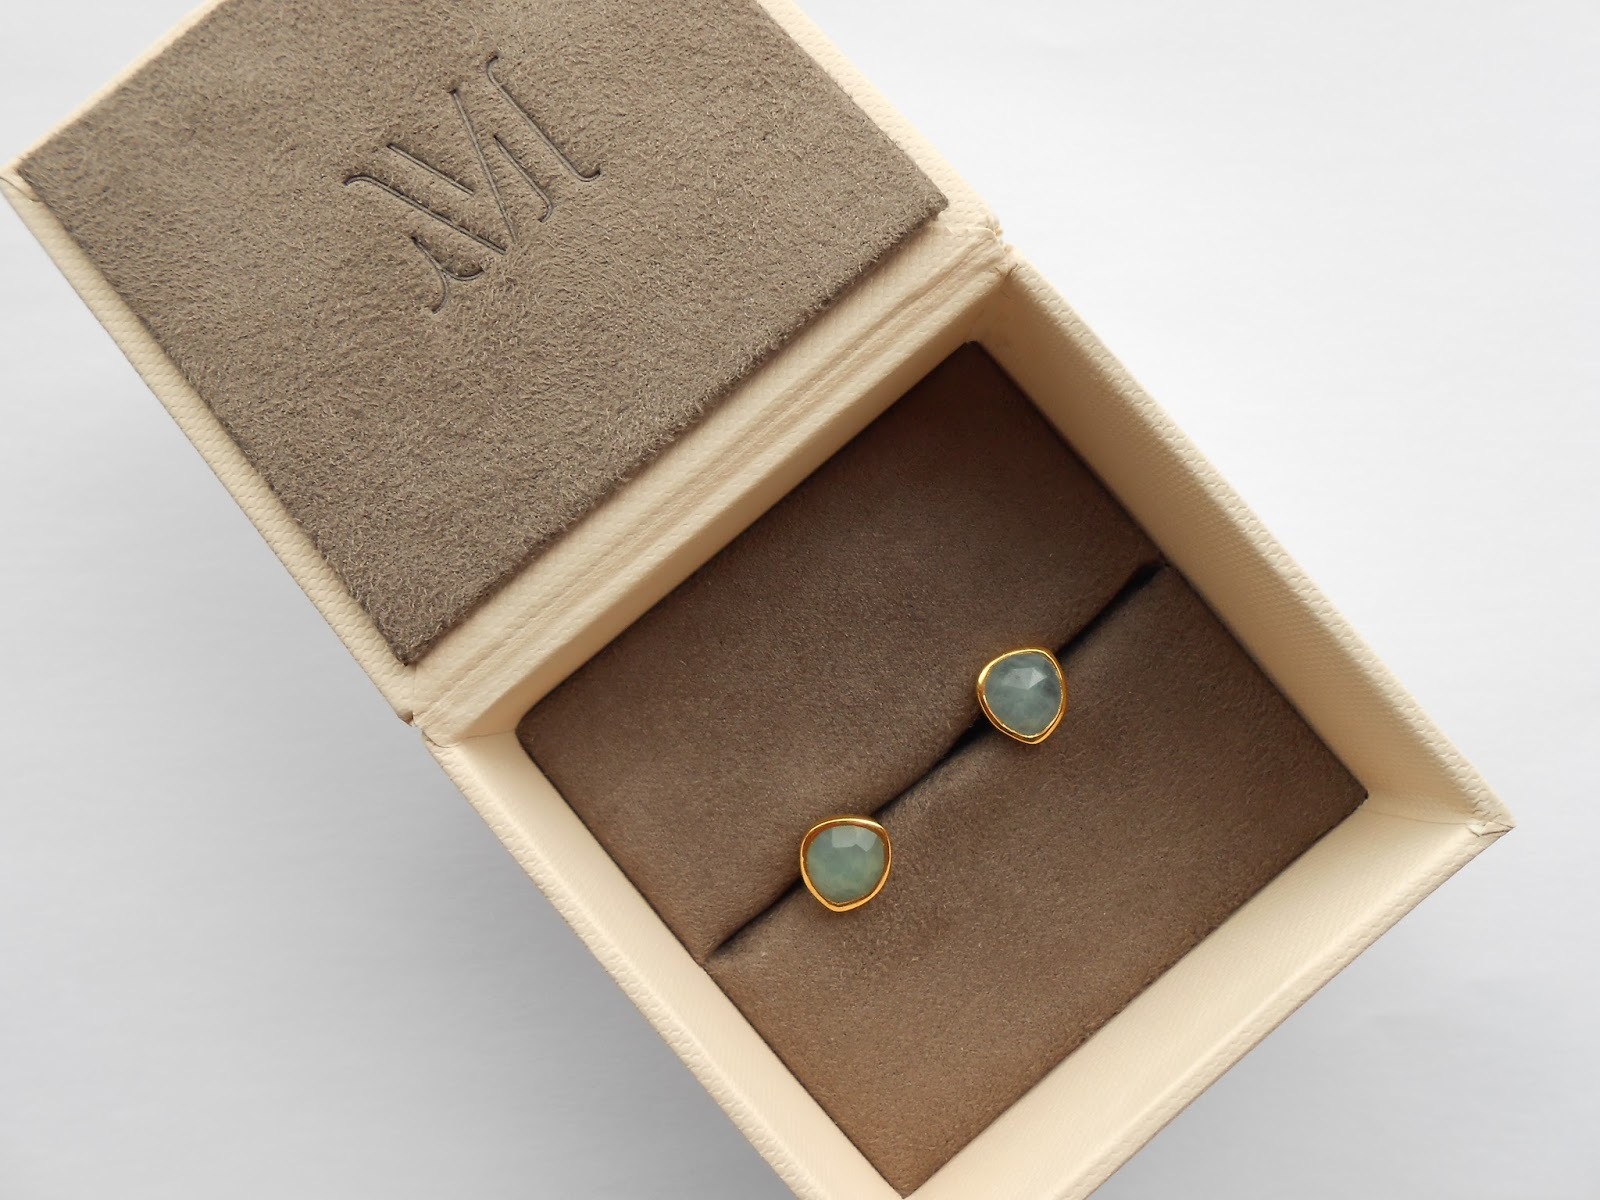 Monica Vinader Siren Stud Earrings in Aquamarine